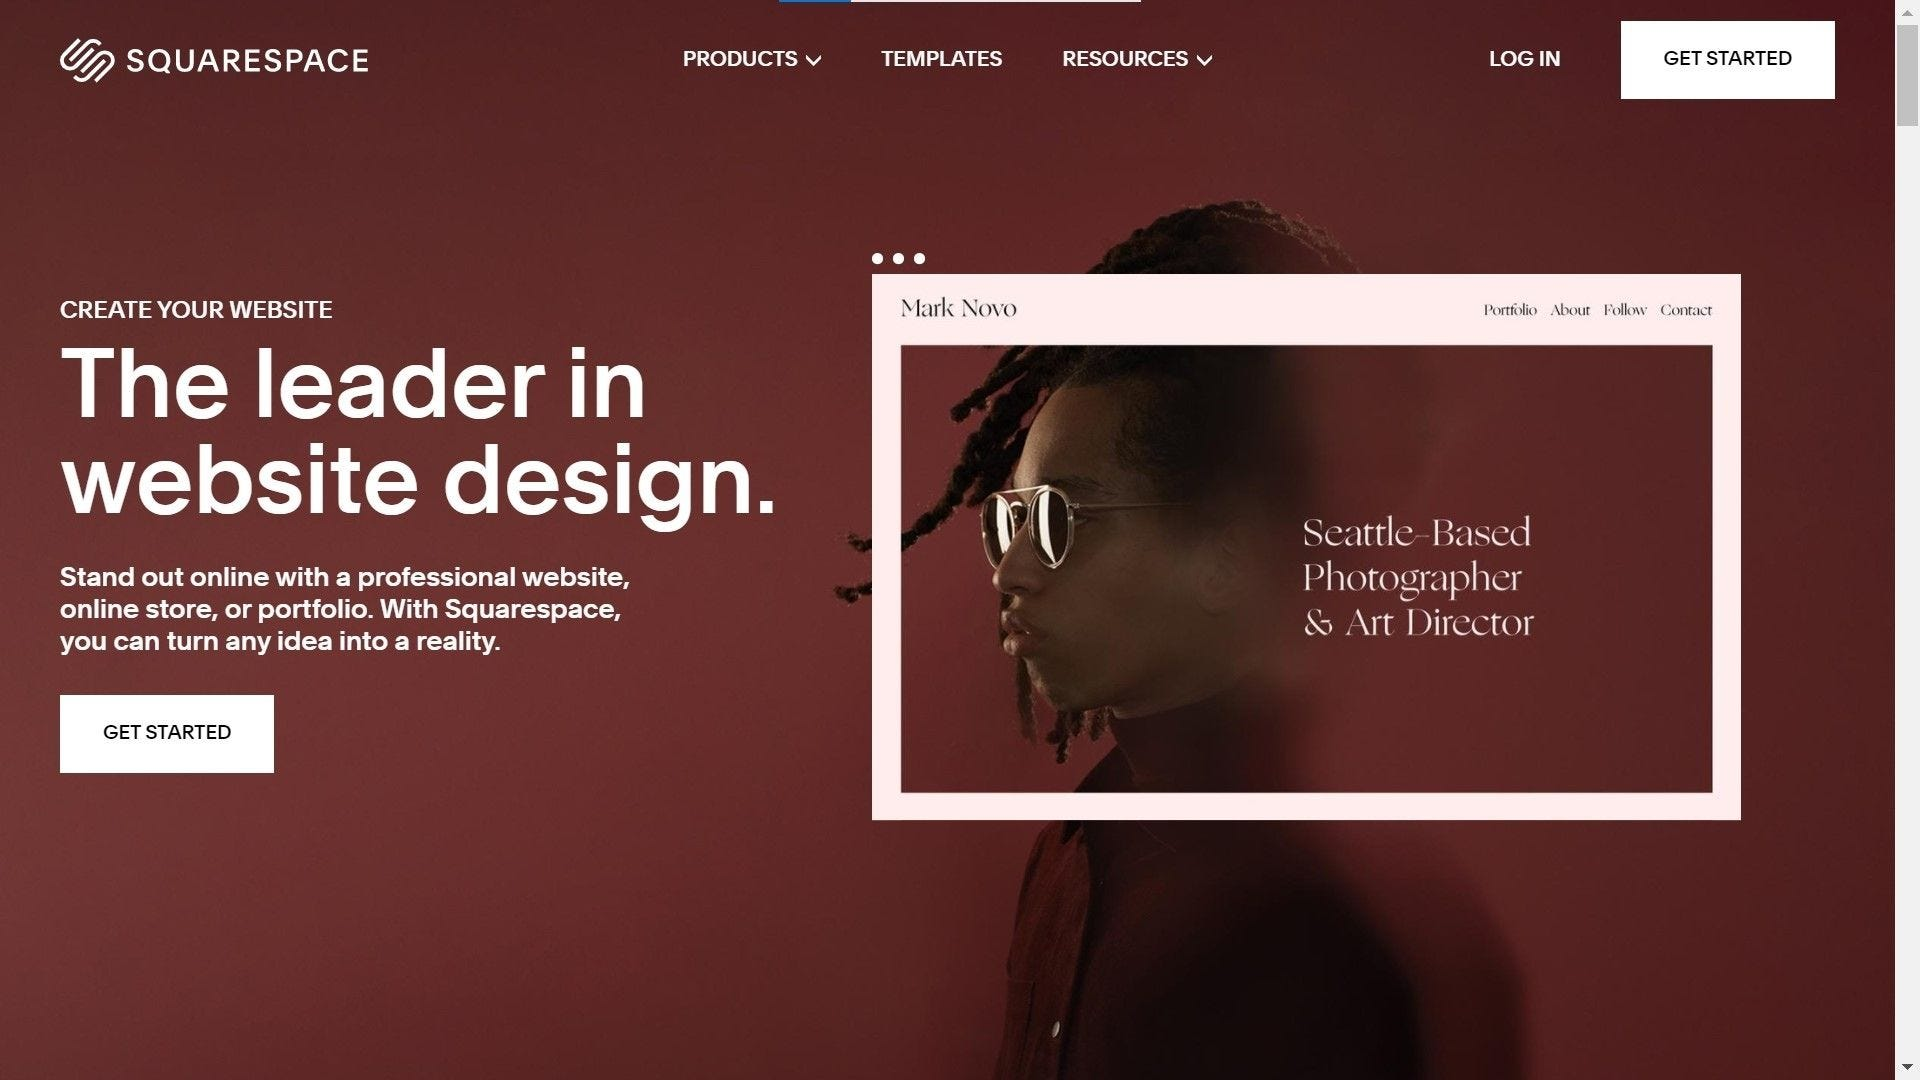 squarespace website builder home page